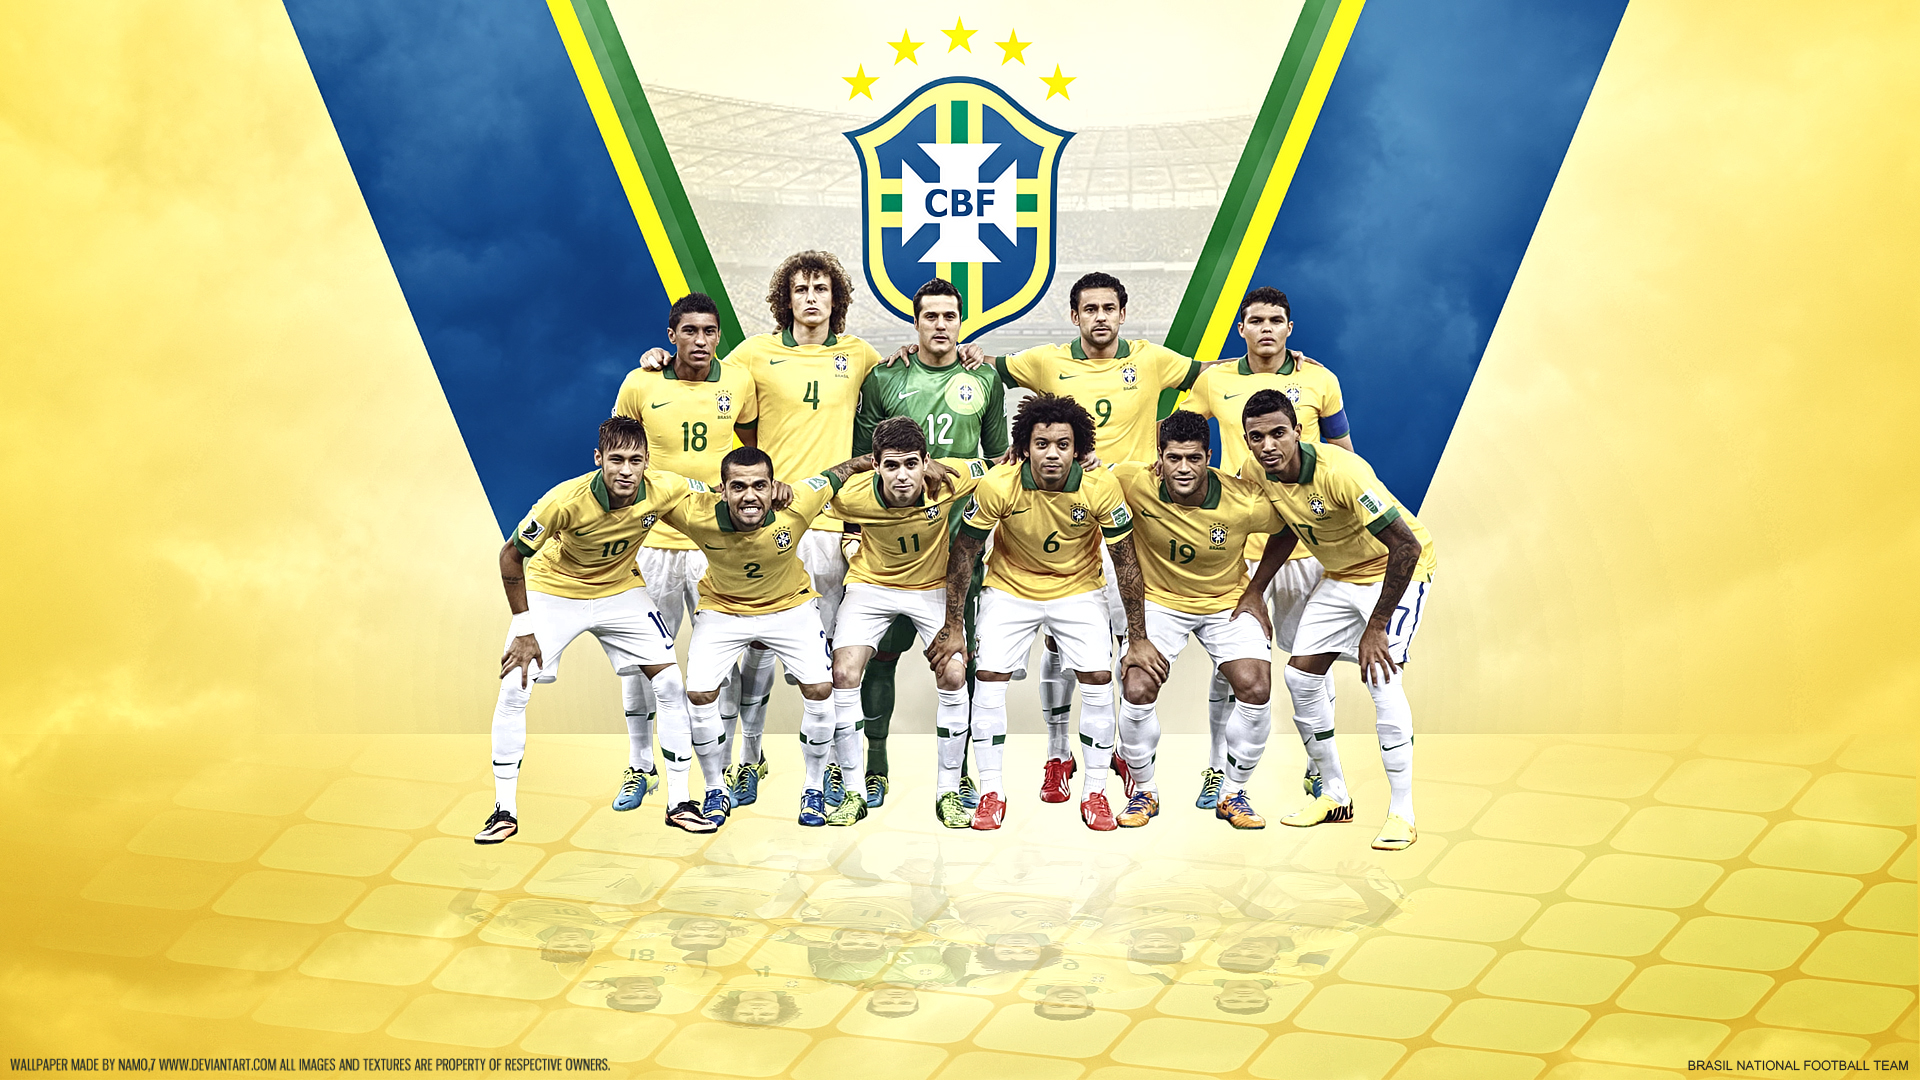 football national teams brazil wallpapers 946 7 wallpaper id 2413 1803